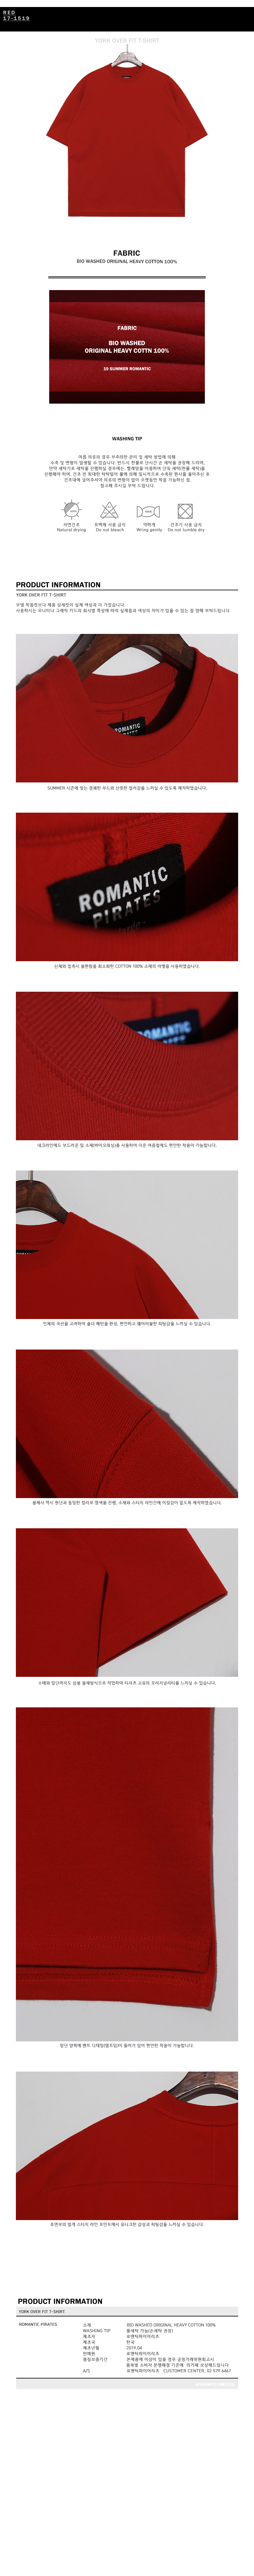 로맨틱 파이어리츠(ROMANTICPIRATES) YORK OVER FIT T-SHIRT(RED)